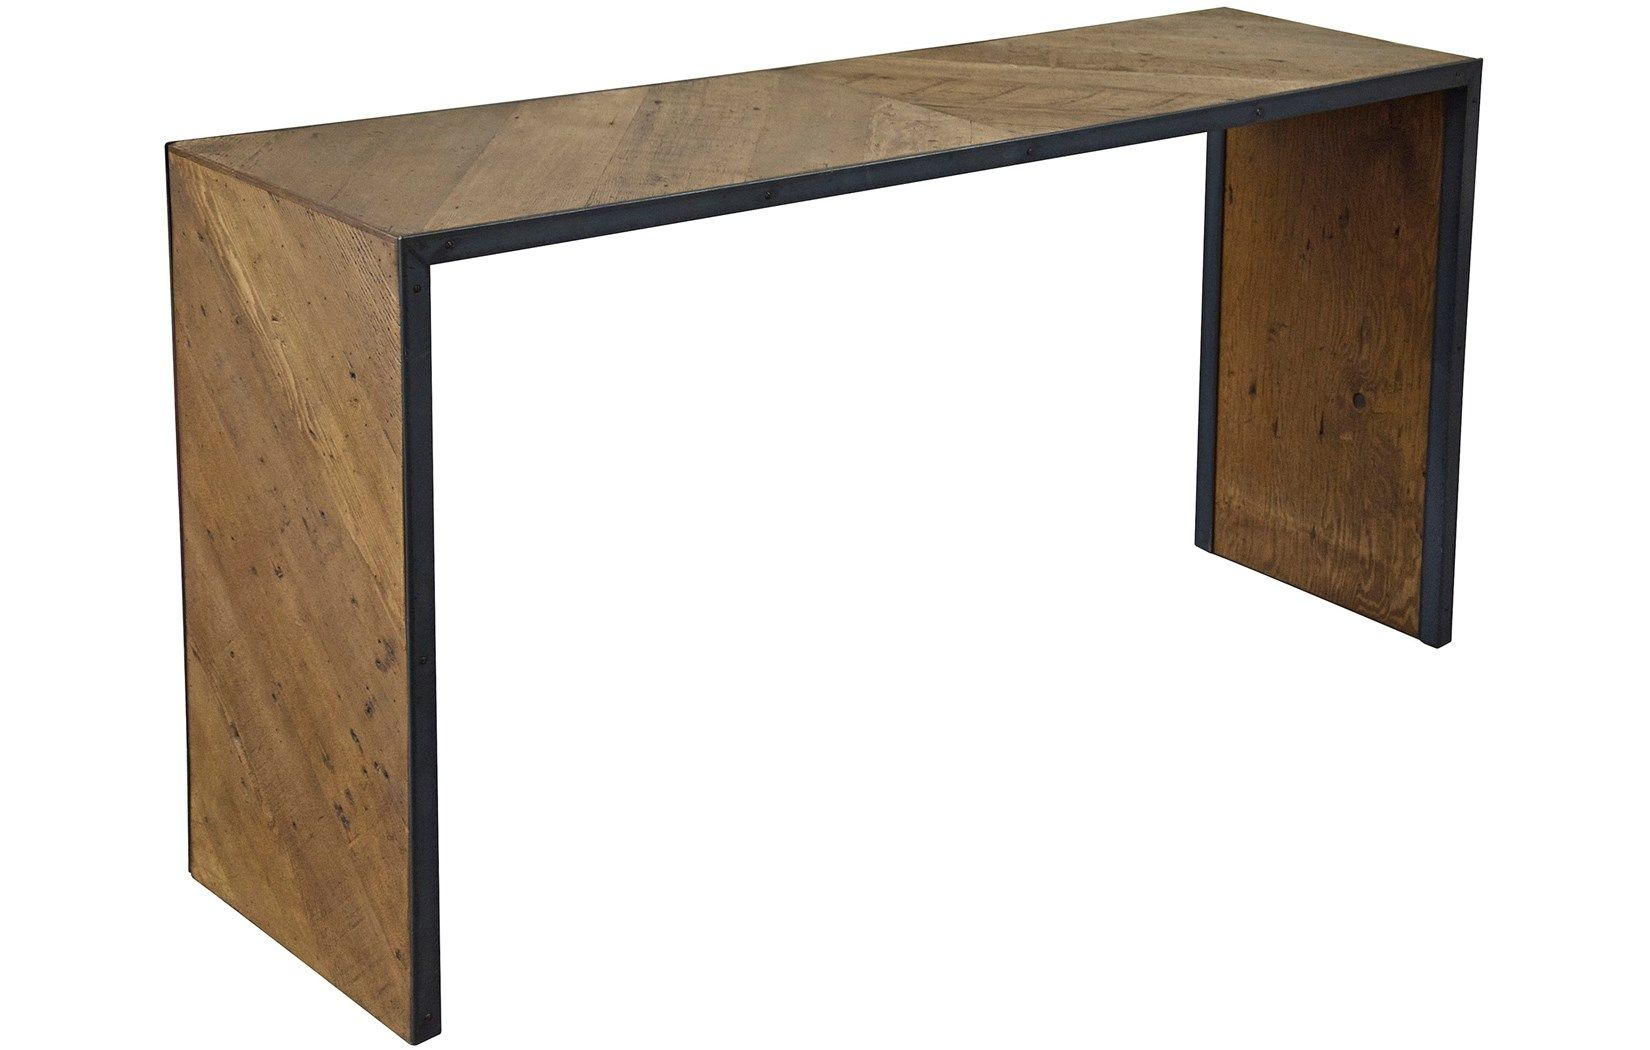 Cfc ow reclaimed lumber ayer console w d h foot